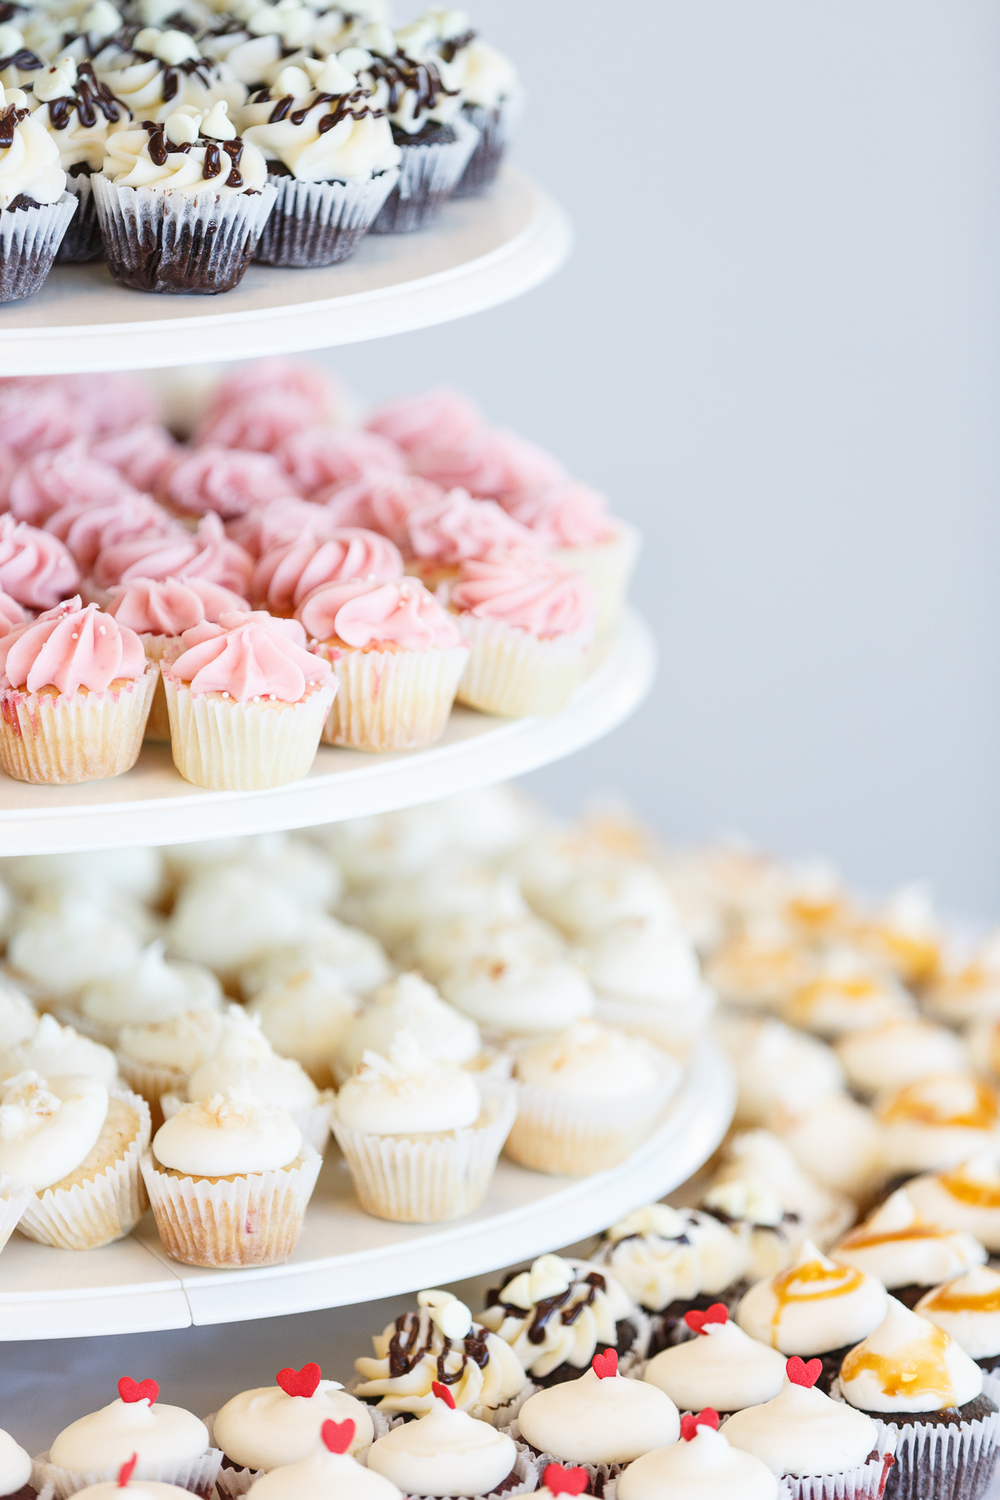 Amazing Cupcakes — BITTERSWEETS BAKERY featuring STUNNING WEDDING ...